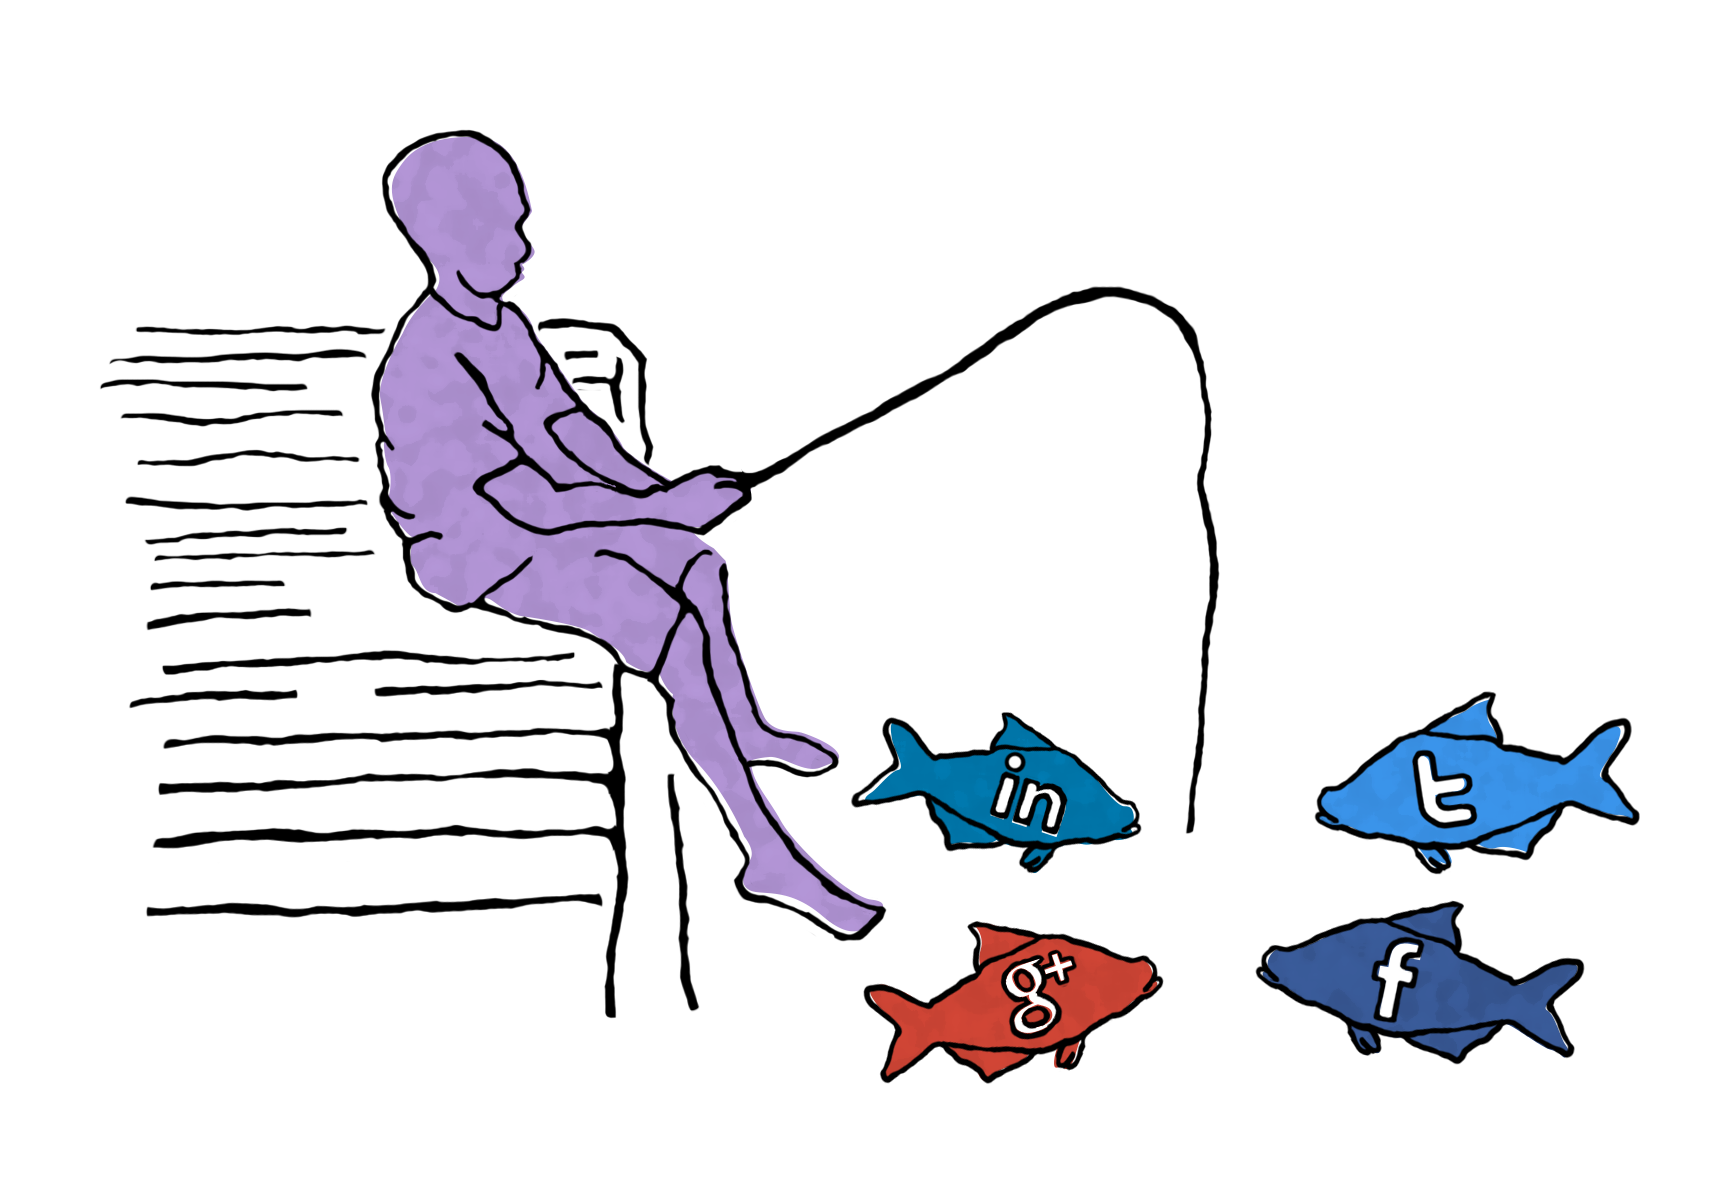 Illustration of someone fishing, with each fish branded with social media site logos.